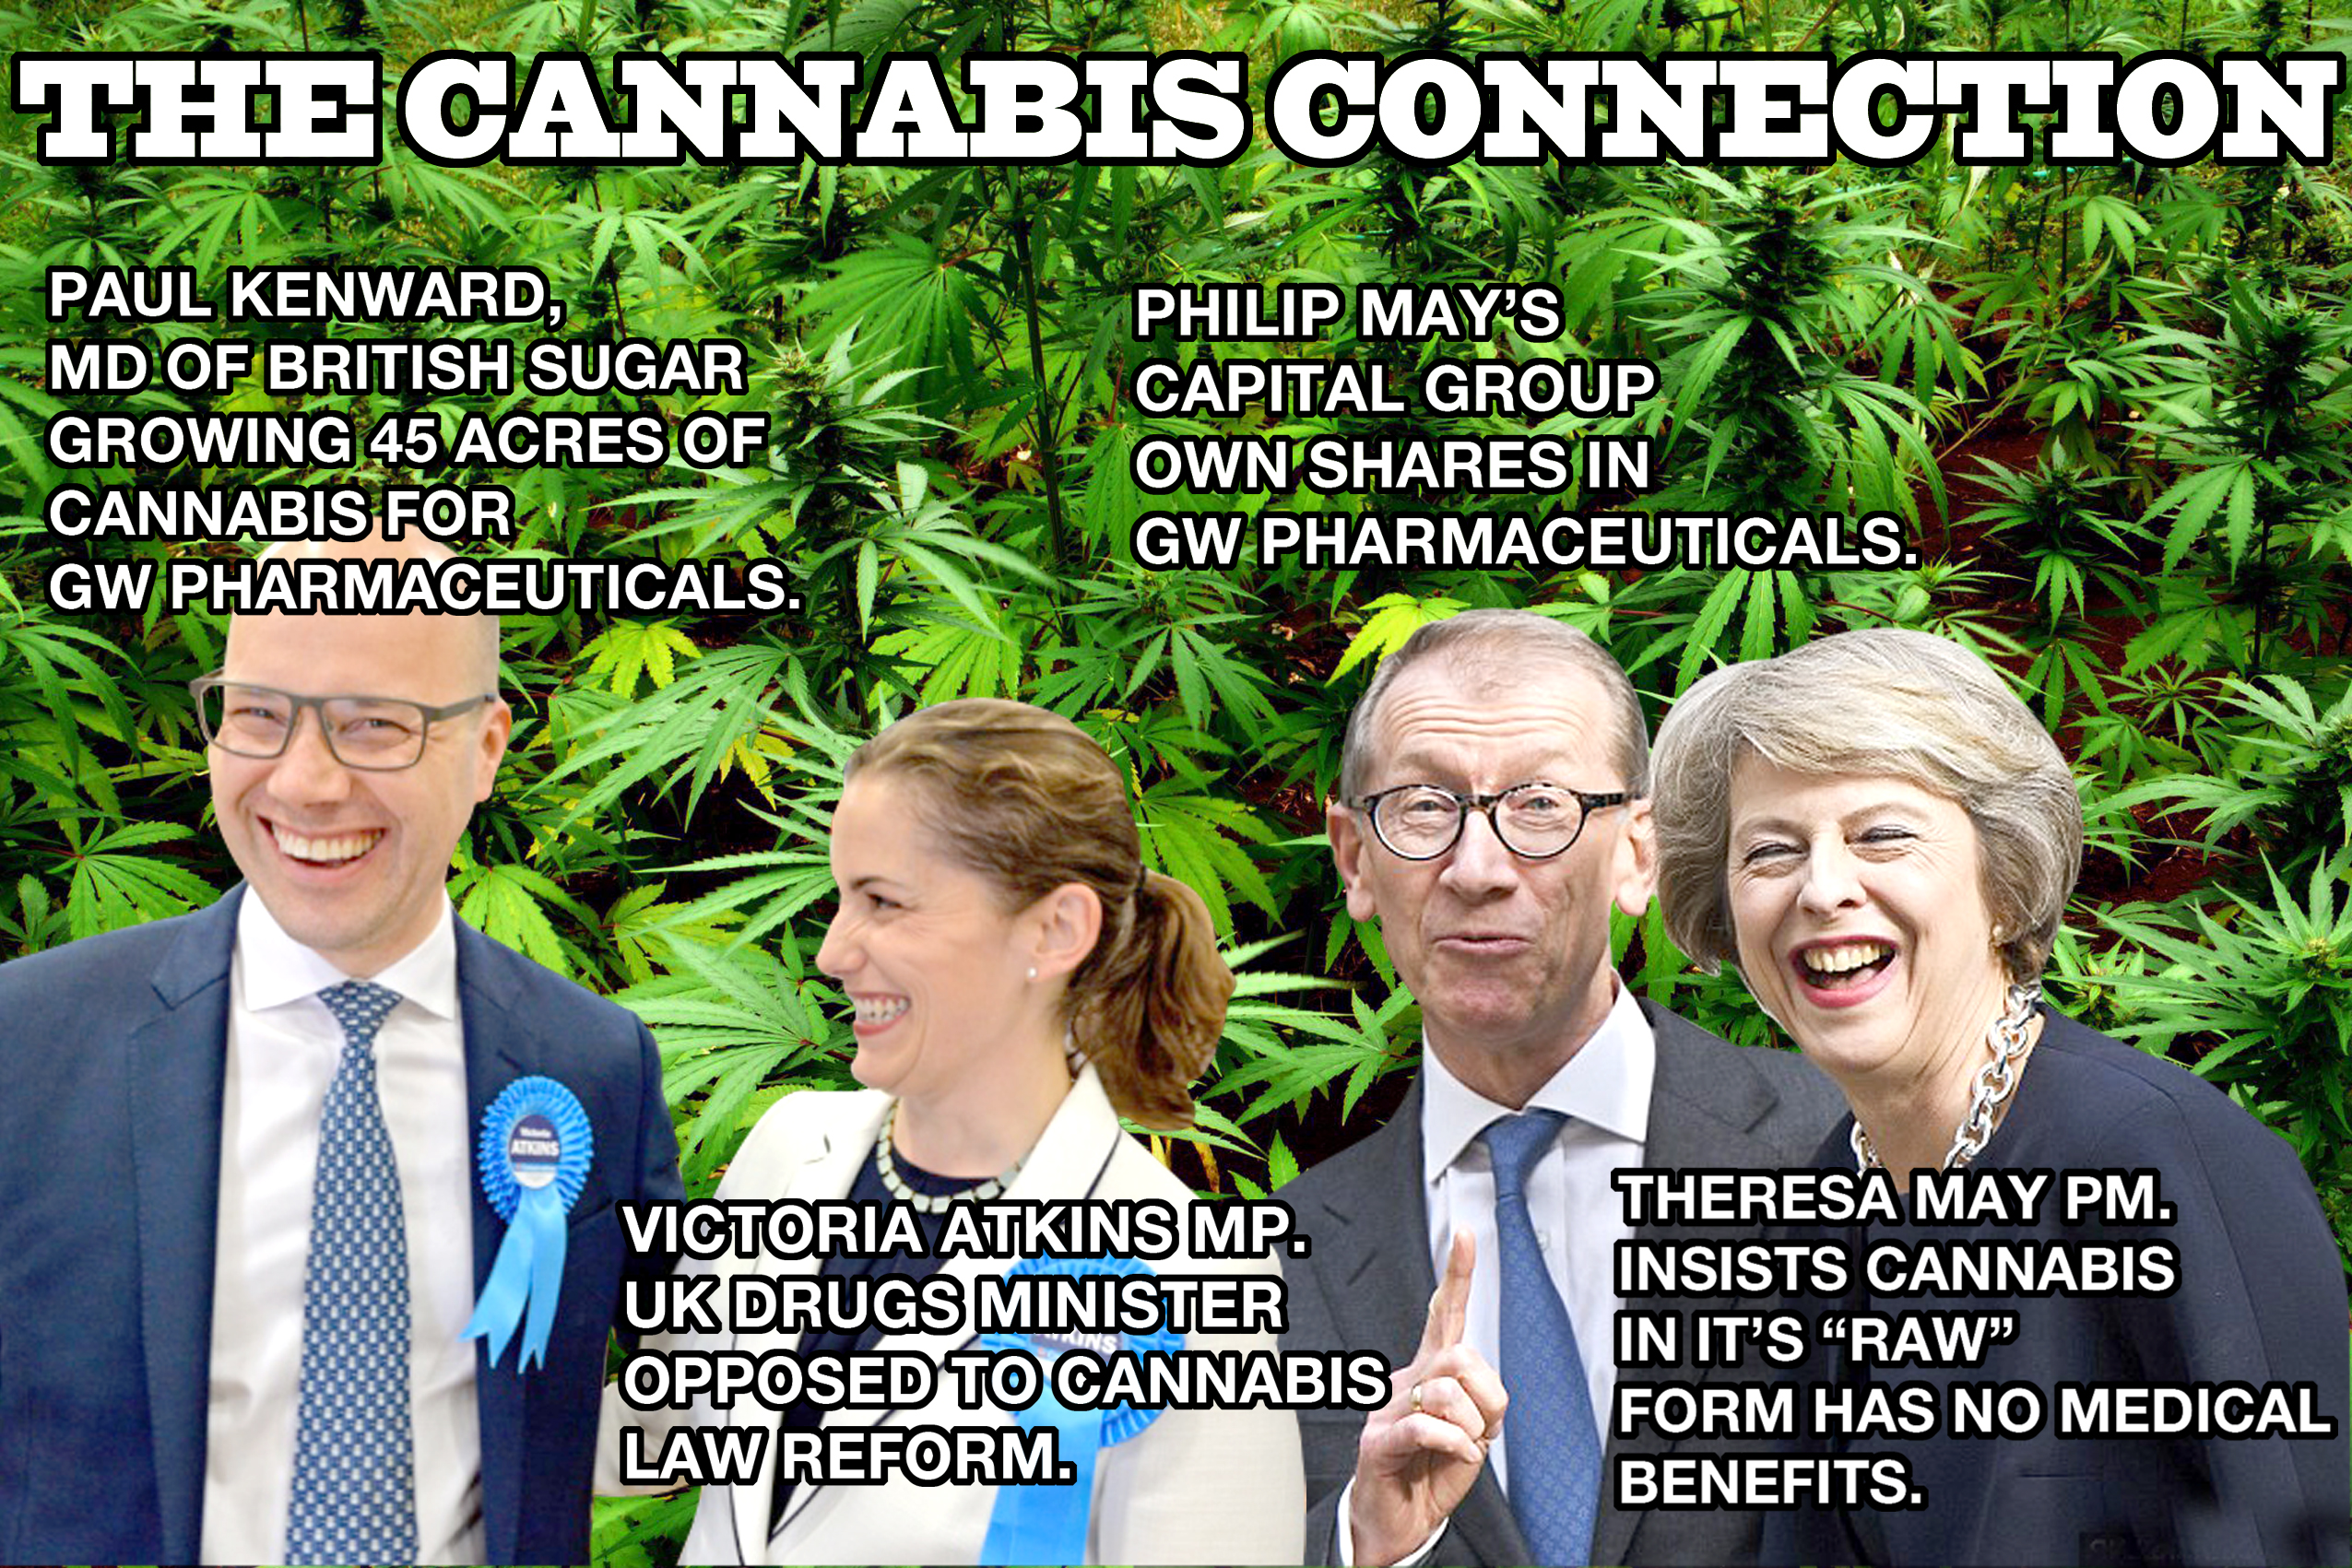 The Cannabis Connection - UK Goverment's vested interests in Cannabis